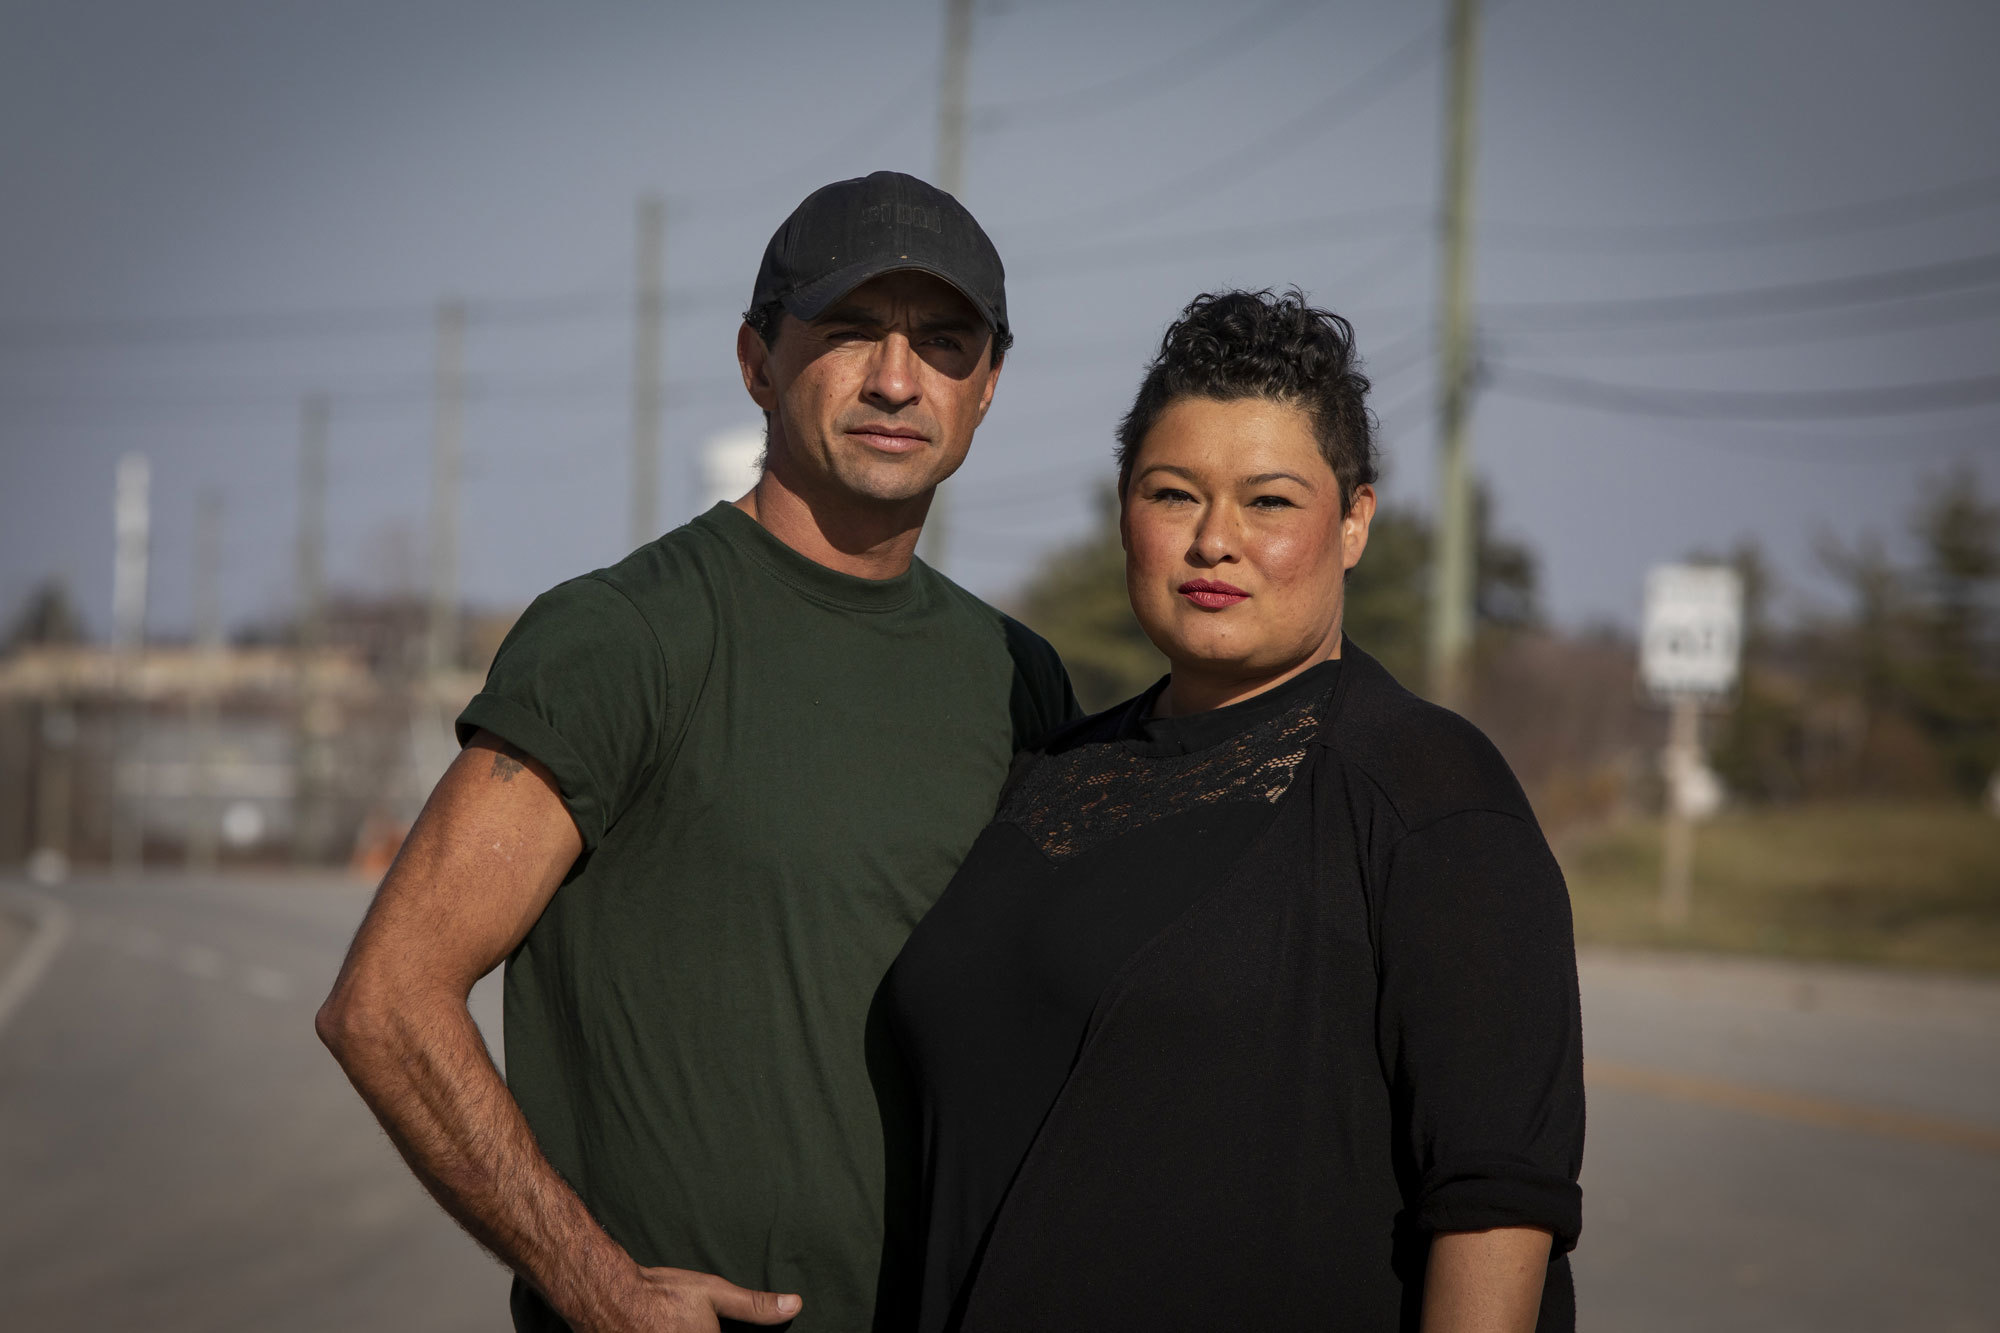 Skyler and Kahsenniyo Williams, photographed at the intersection of Argyle Street South and 6th Line. (Evan Mitsui/CBC)